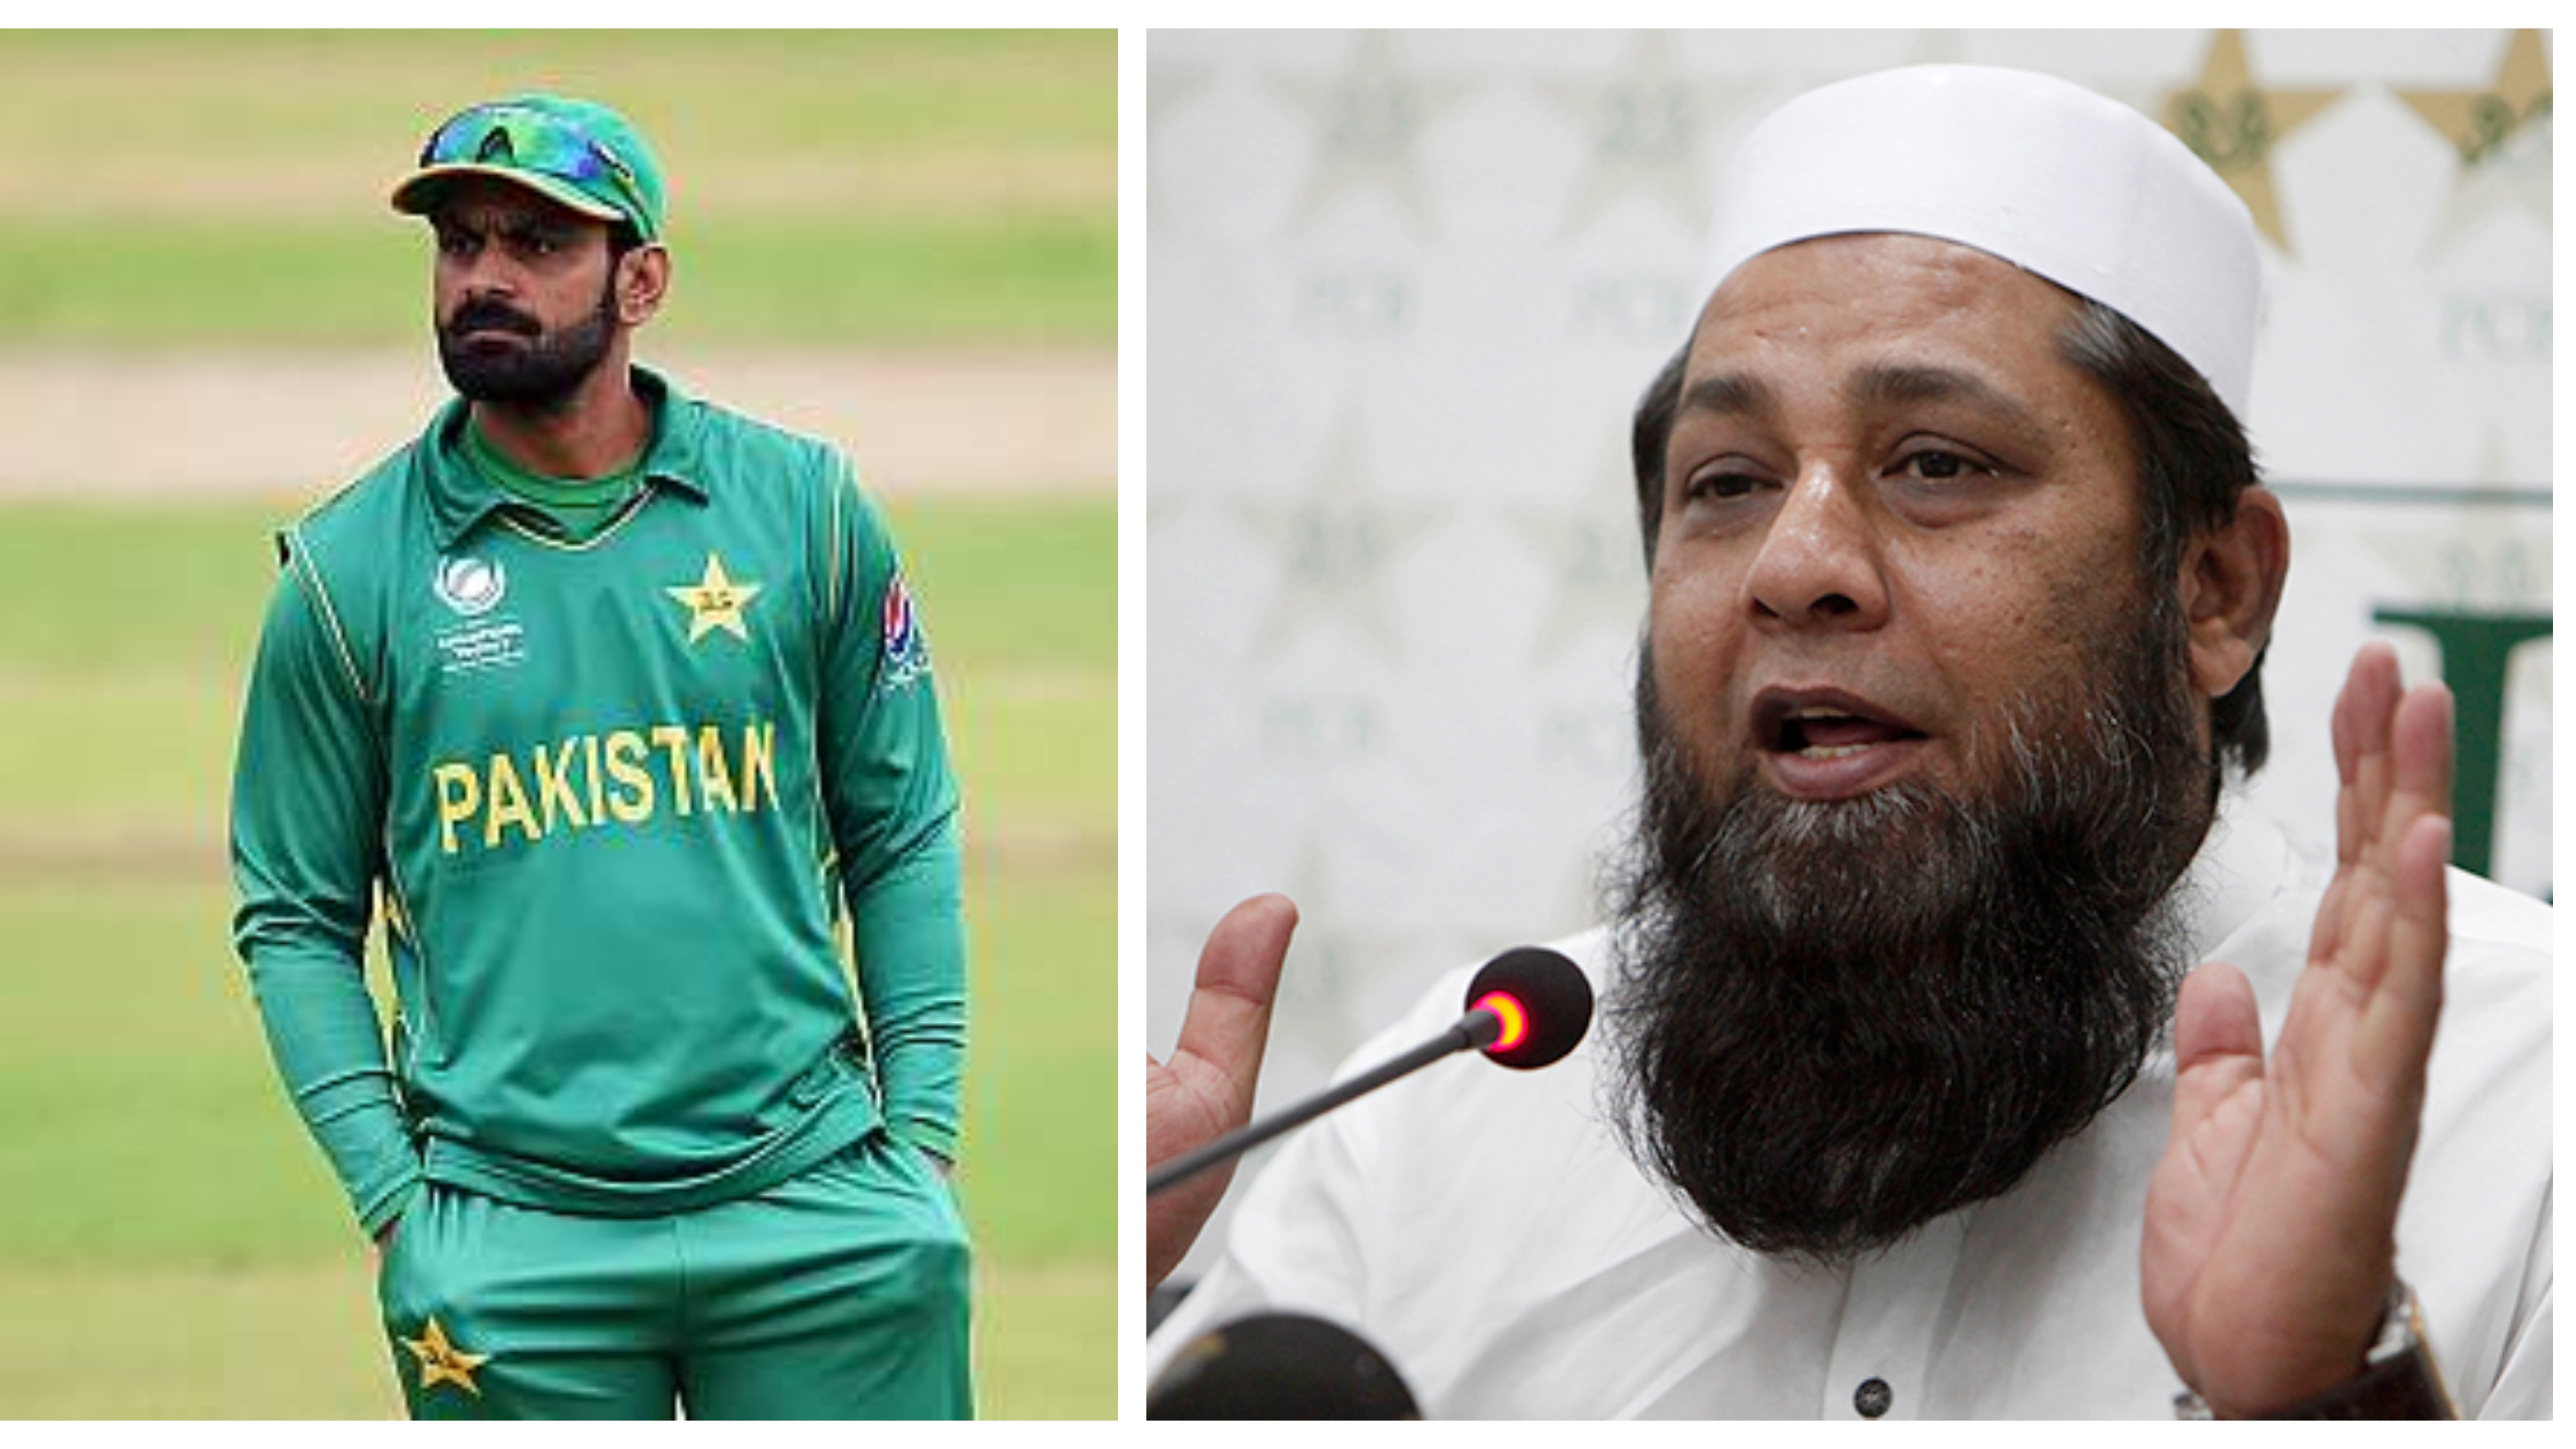 Asia Cup 2018: Hafeez dropped from Asia Cup squad but still a part of World Cup plans, says Inzamam-ul-Haq